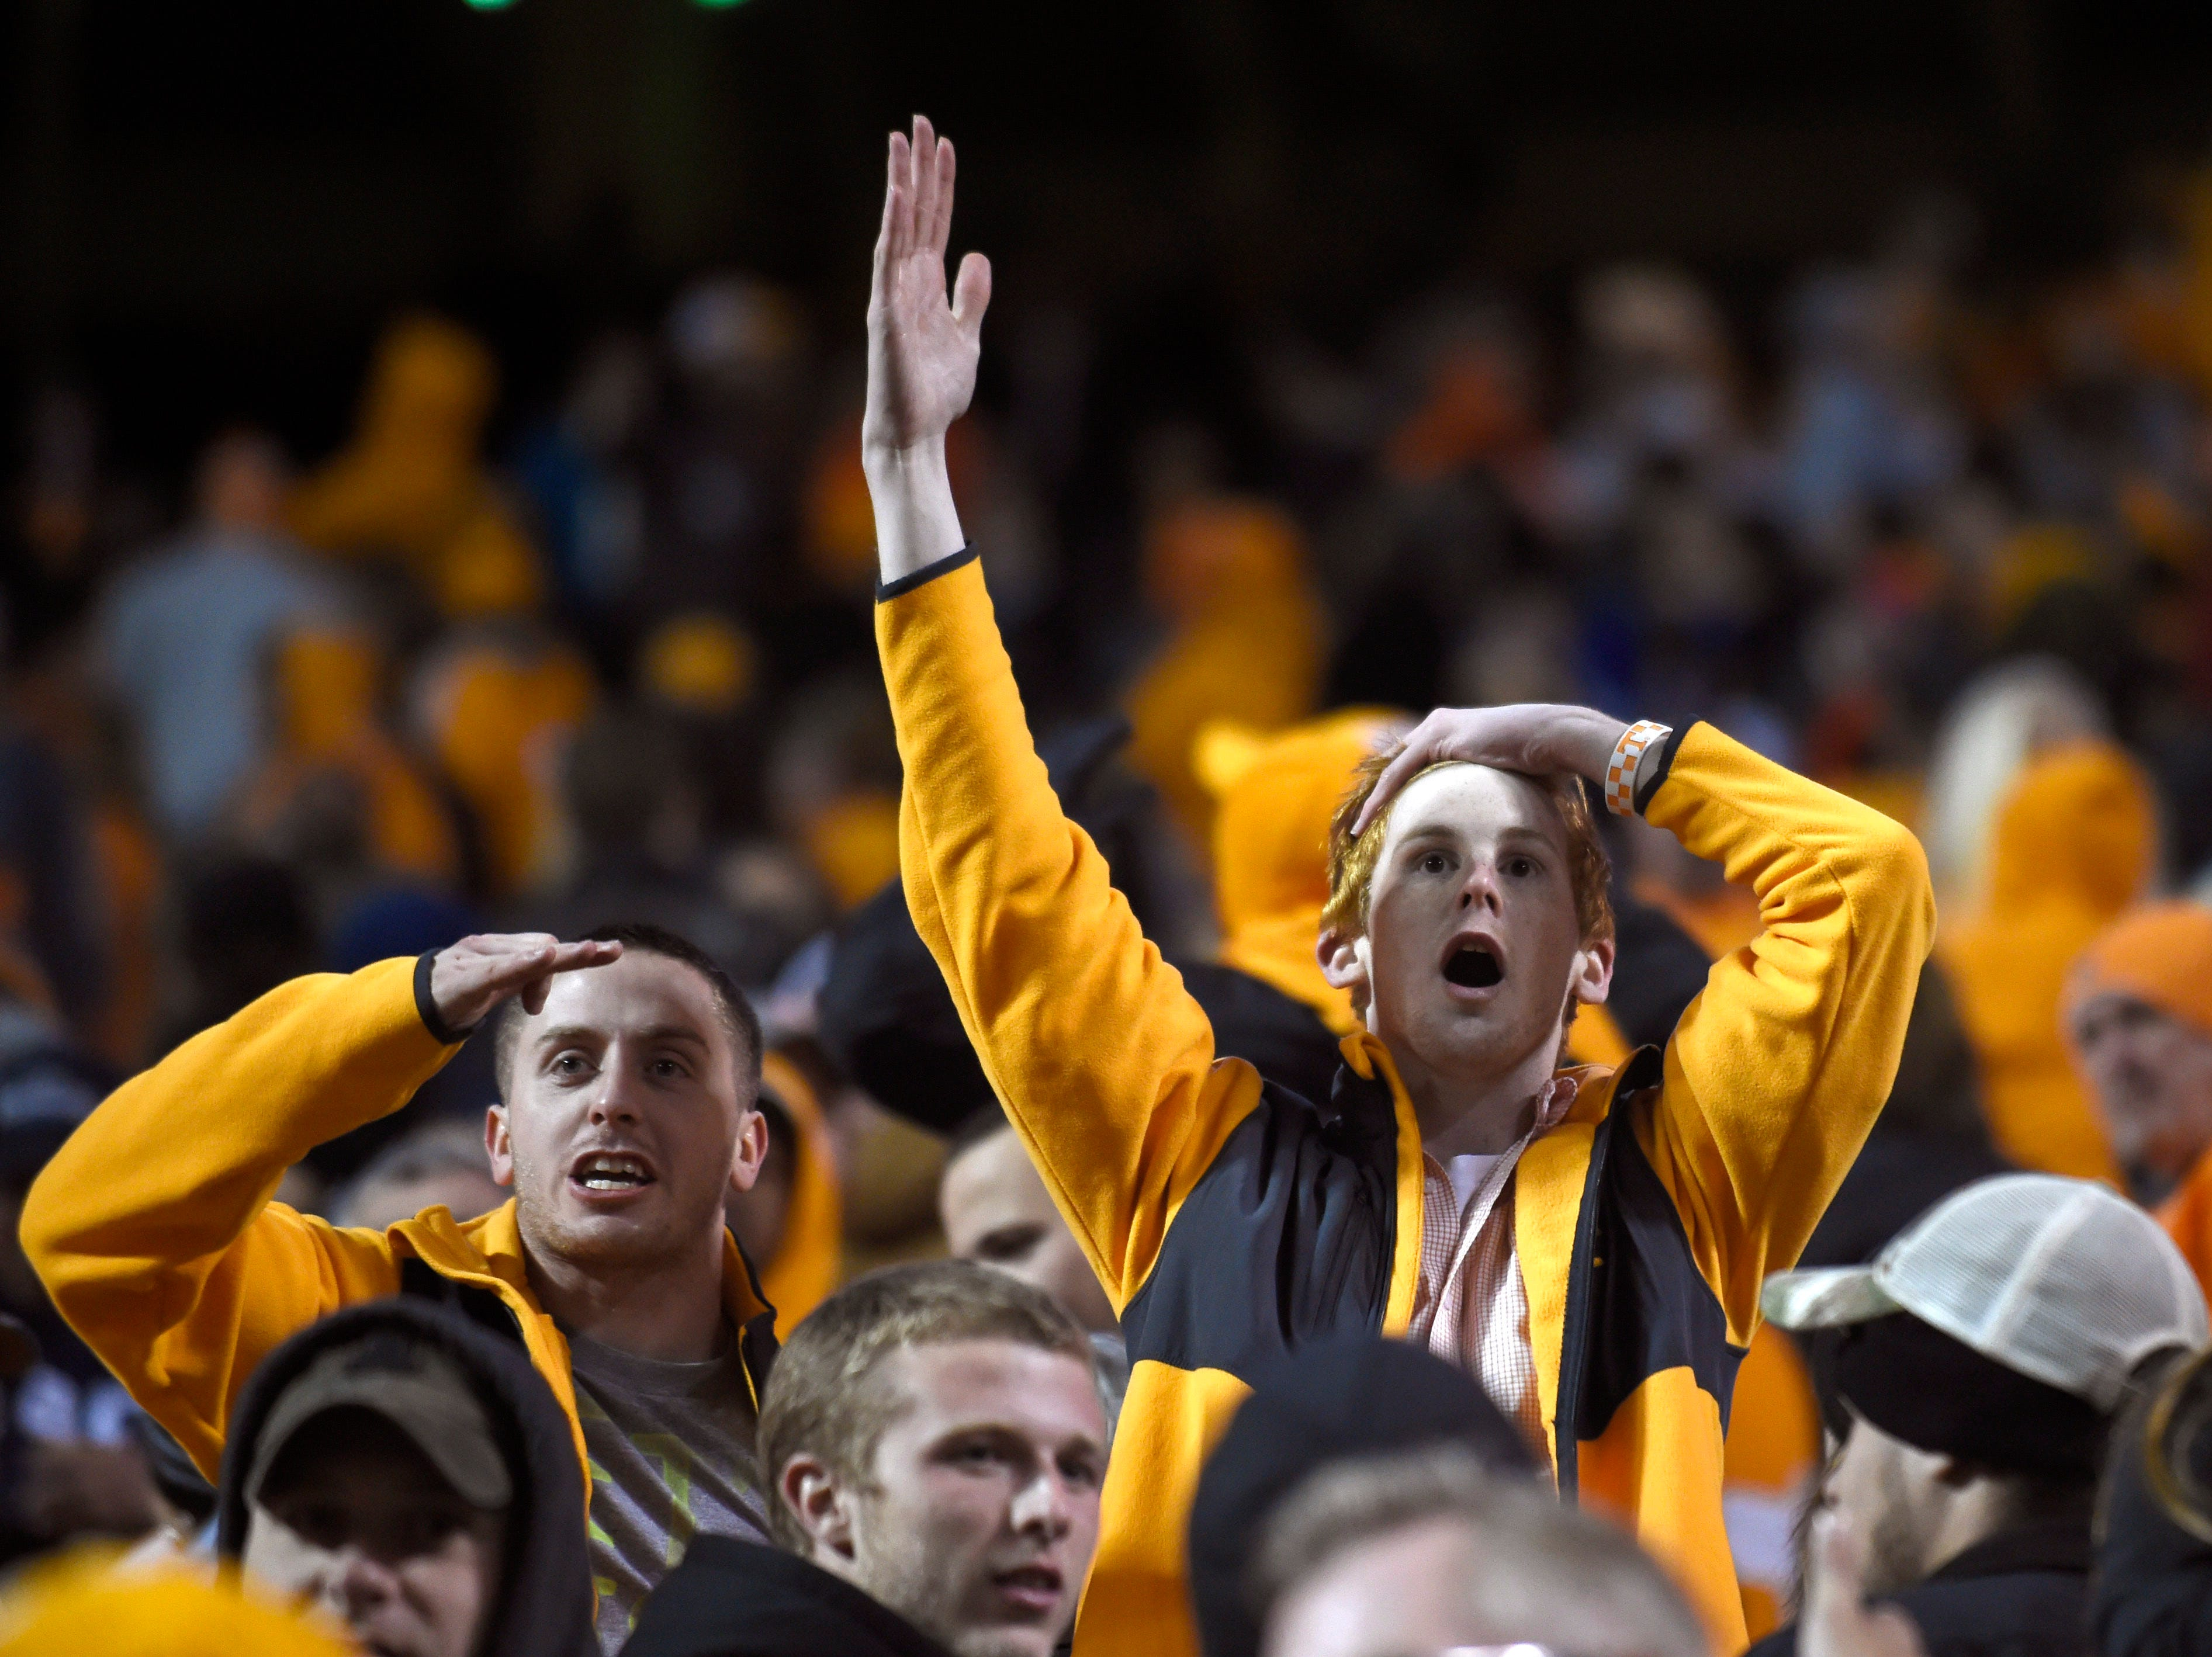 Tennessee fans react to the second onside kick ruling in favor of Missouri during their college football game at Neyland Stadium in Knoxville, Tenn., Saturday, Nov. 22, 2014.  Missouri won 29-21.